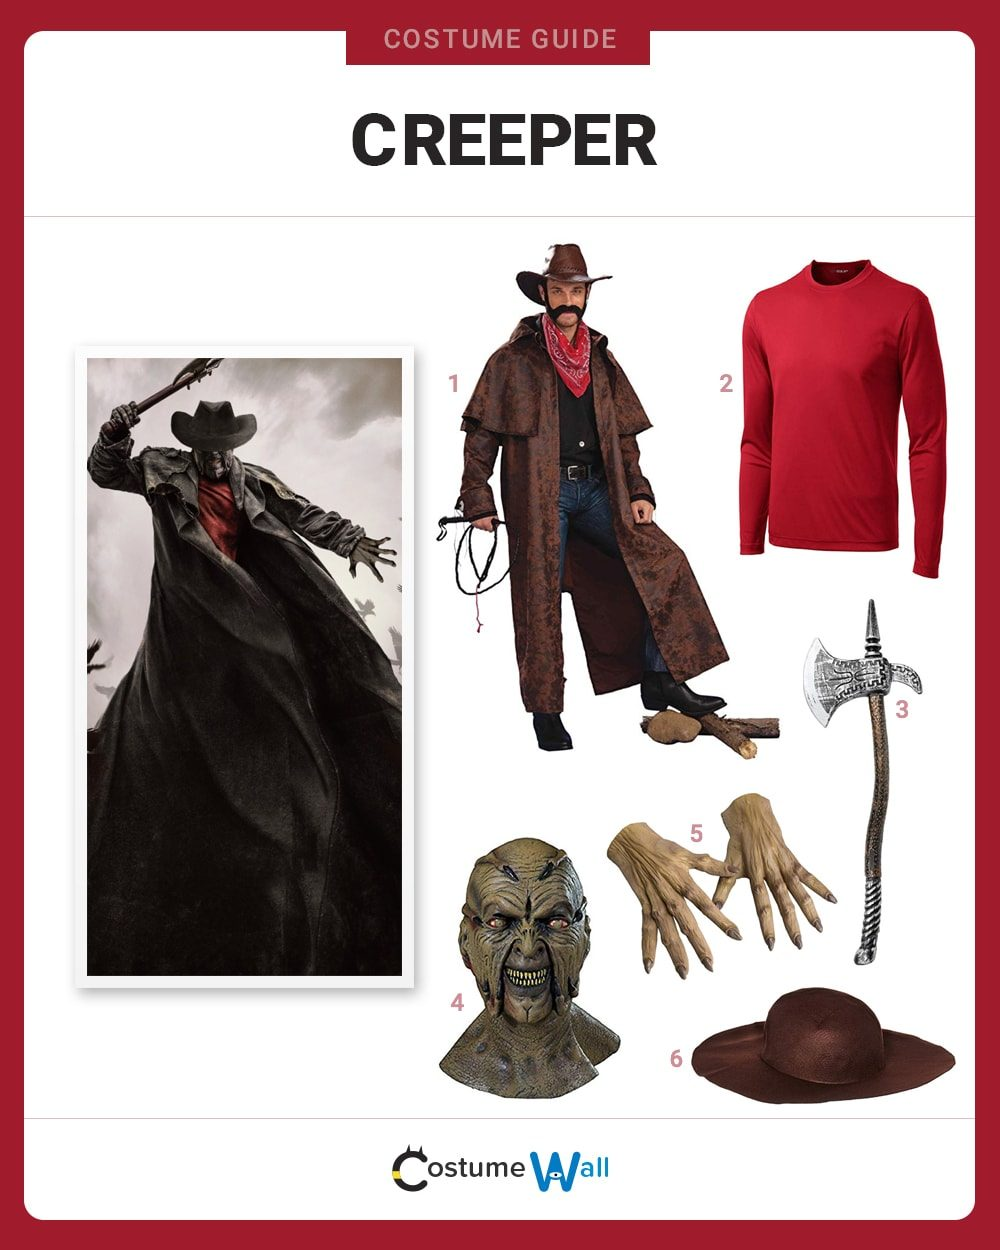 Creeper Costume Guide